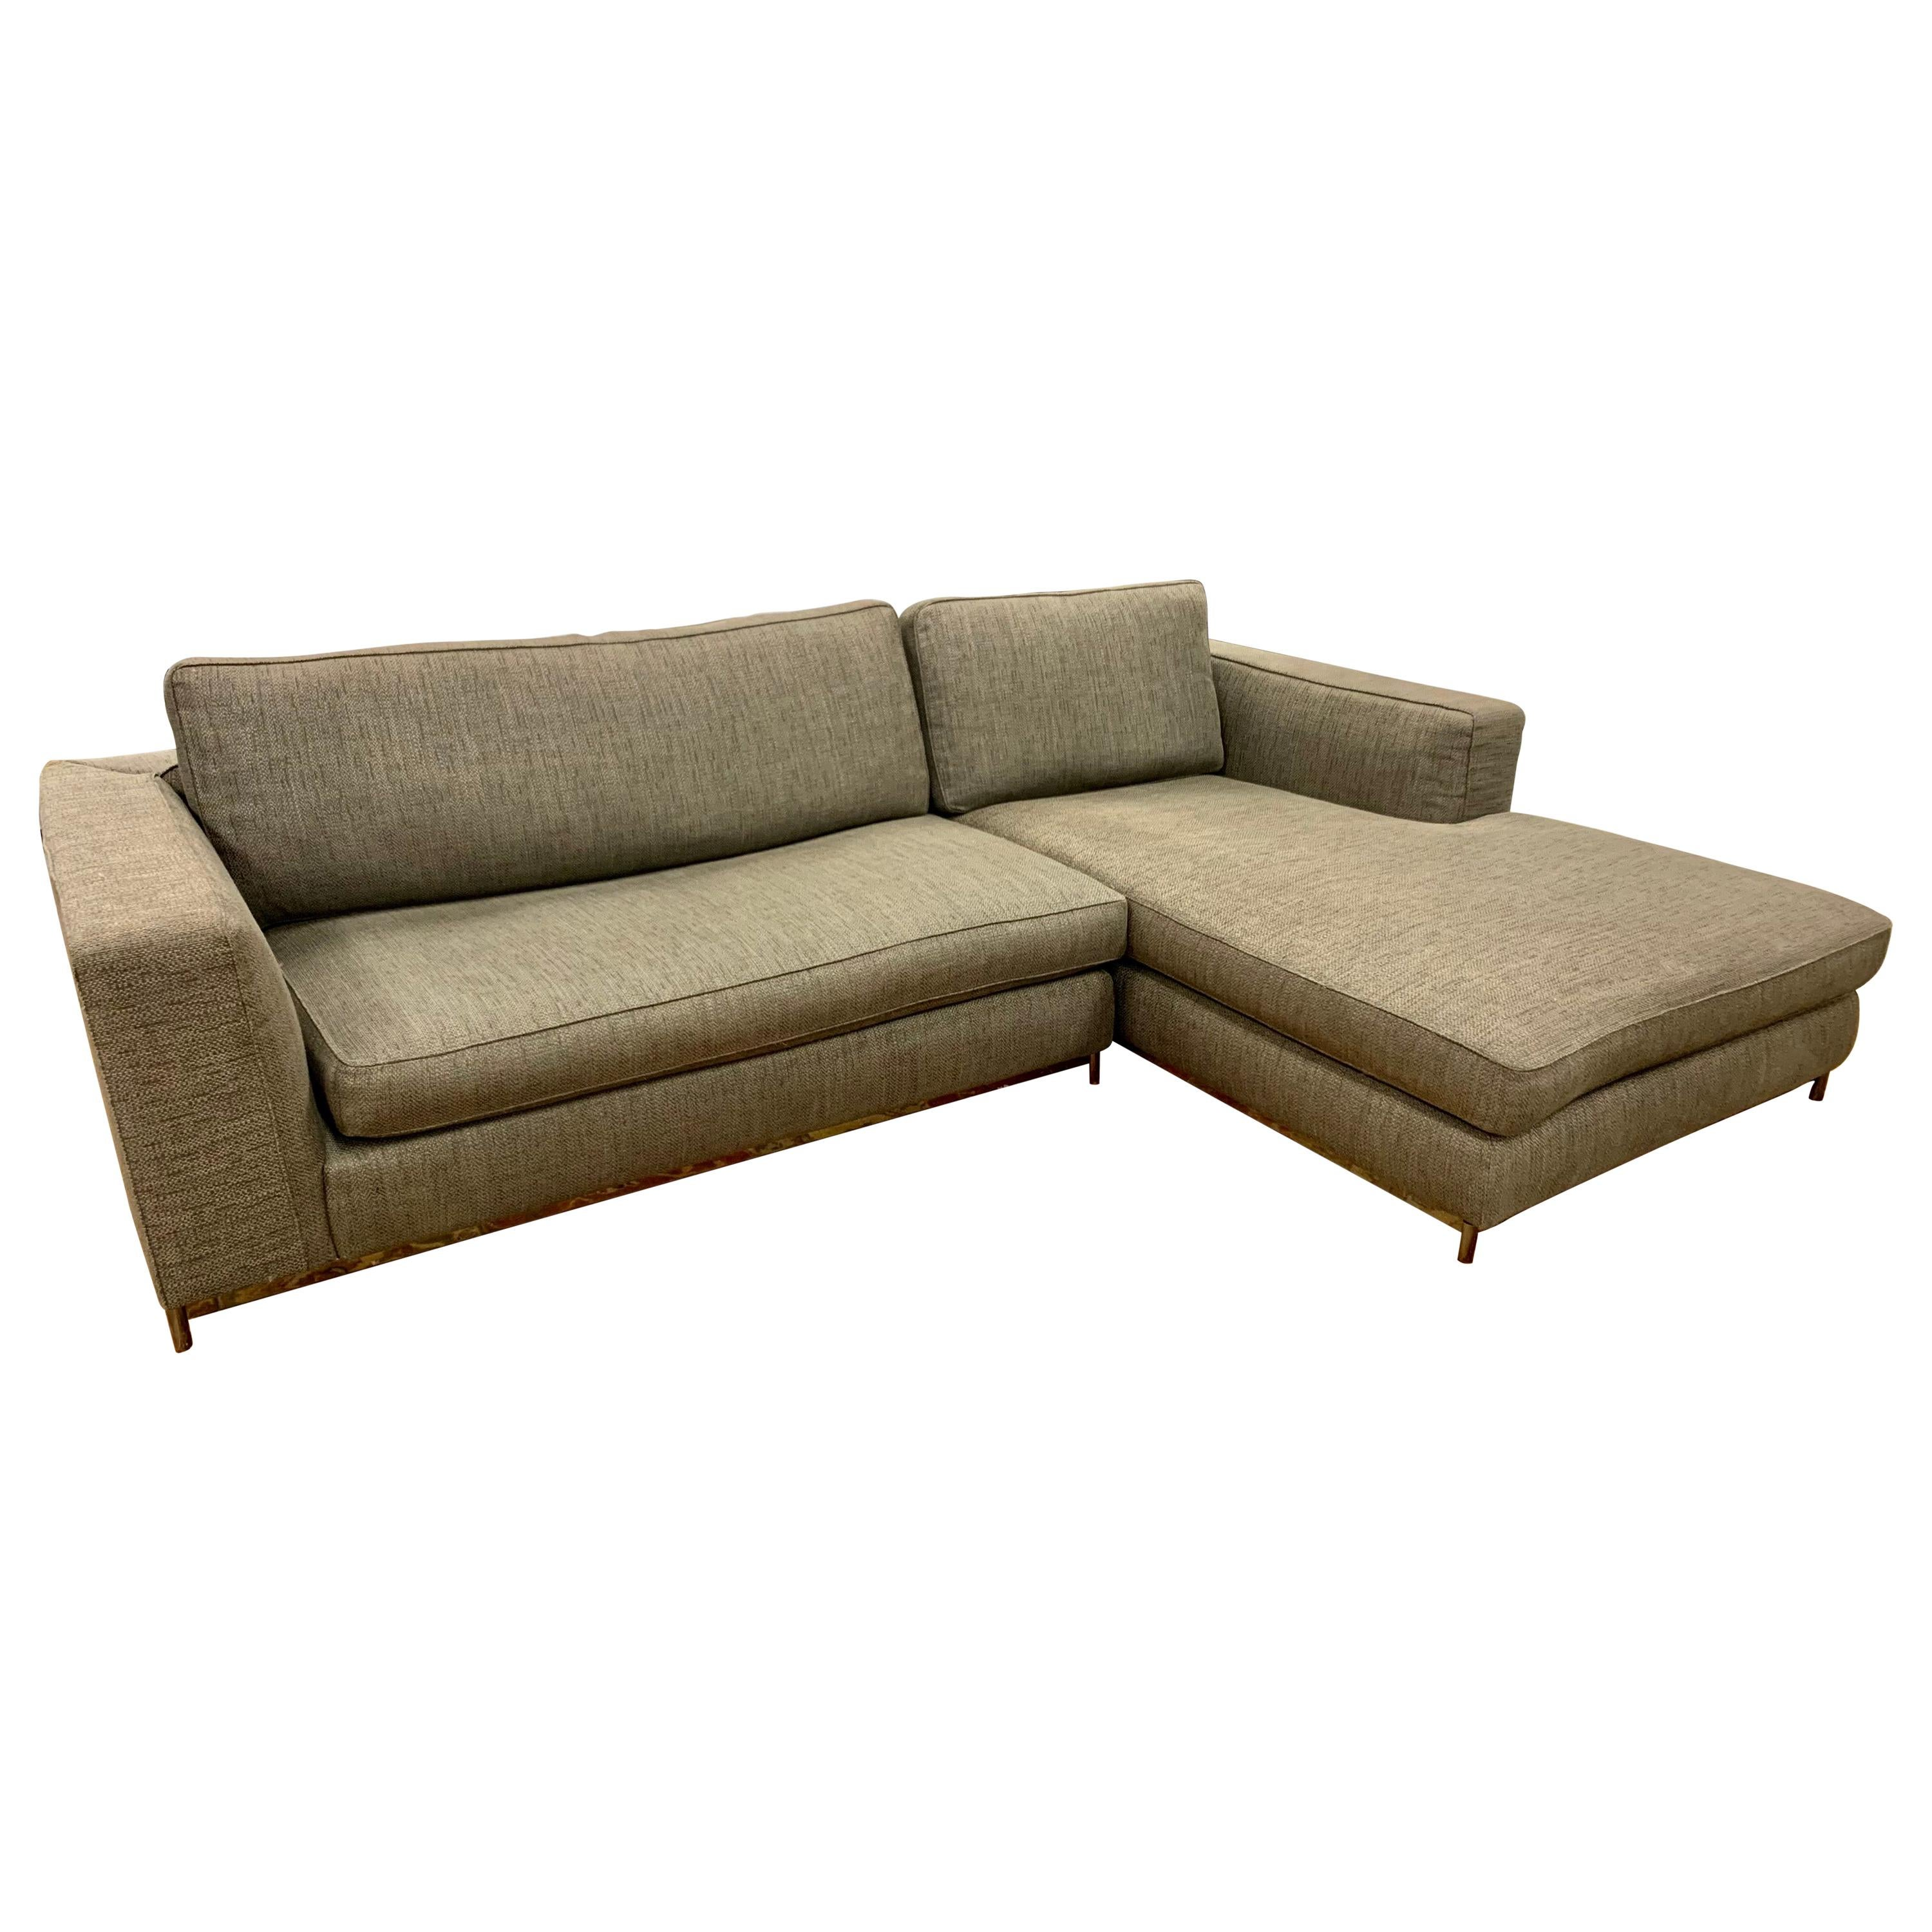 Minotti Signed Two-Piece Floating Sectional Sofa Made in Italy